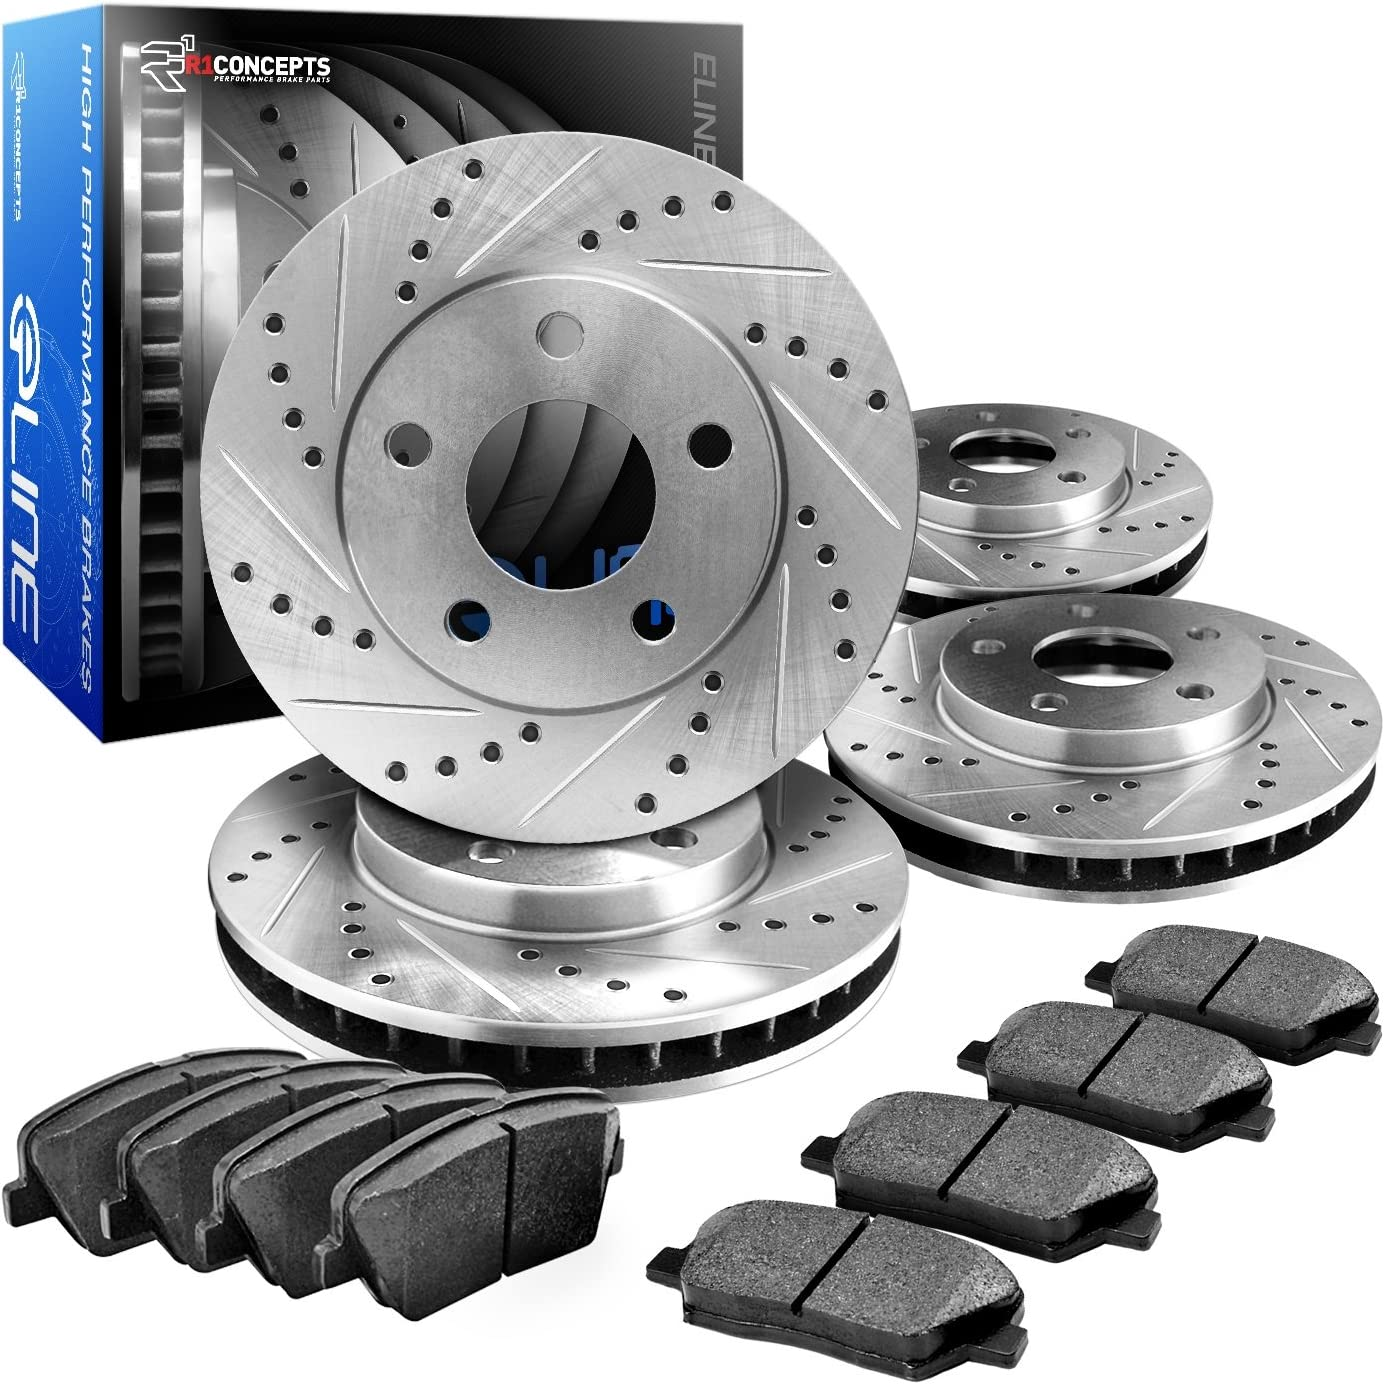 Inexpensive R1 Concepts CEDS10914 Eline specialty shop Rotors Slotted Series Cross-Drilled